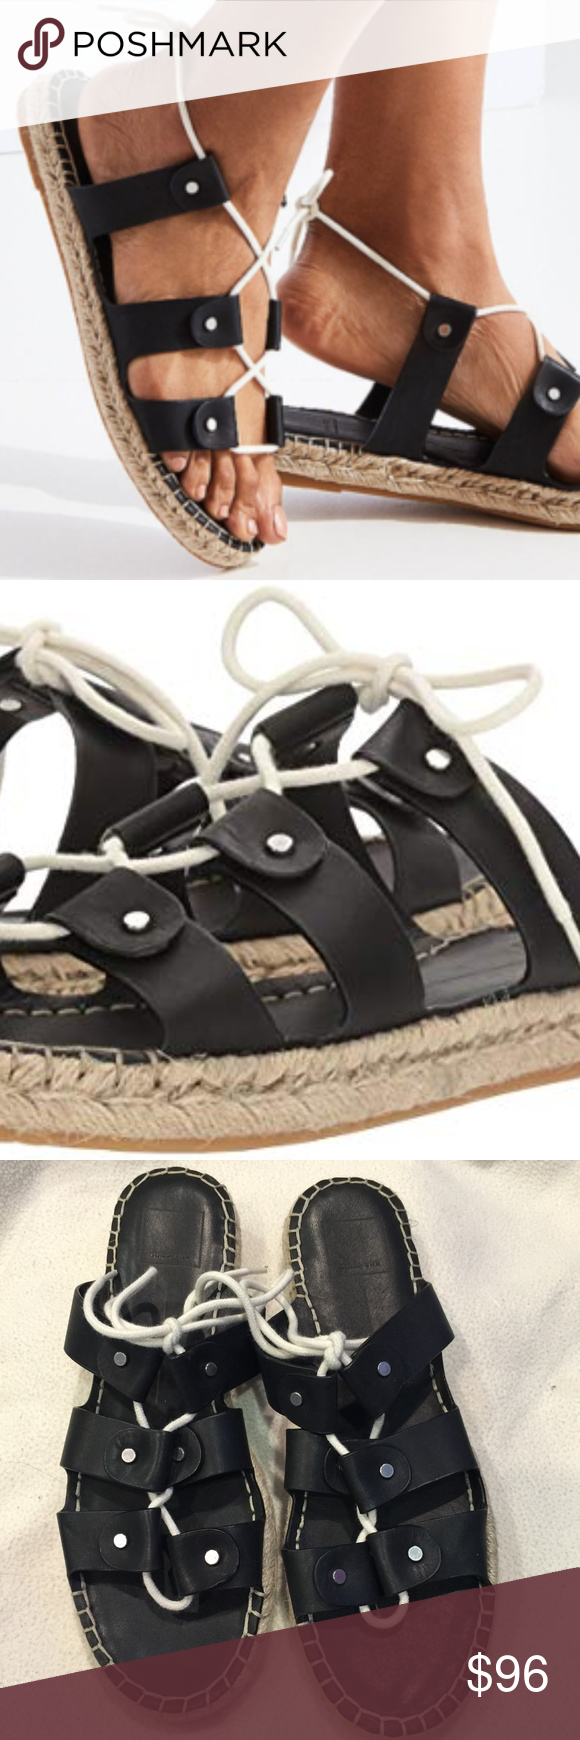 2254de30b249e4 Dolce Vita Women s Vana Espadrille Sandal NEW Sunny days made so effortless  with these classic gladiator